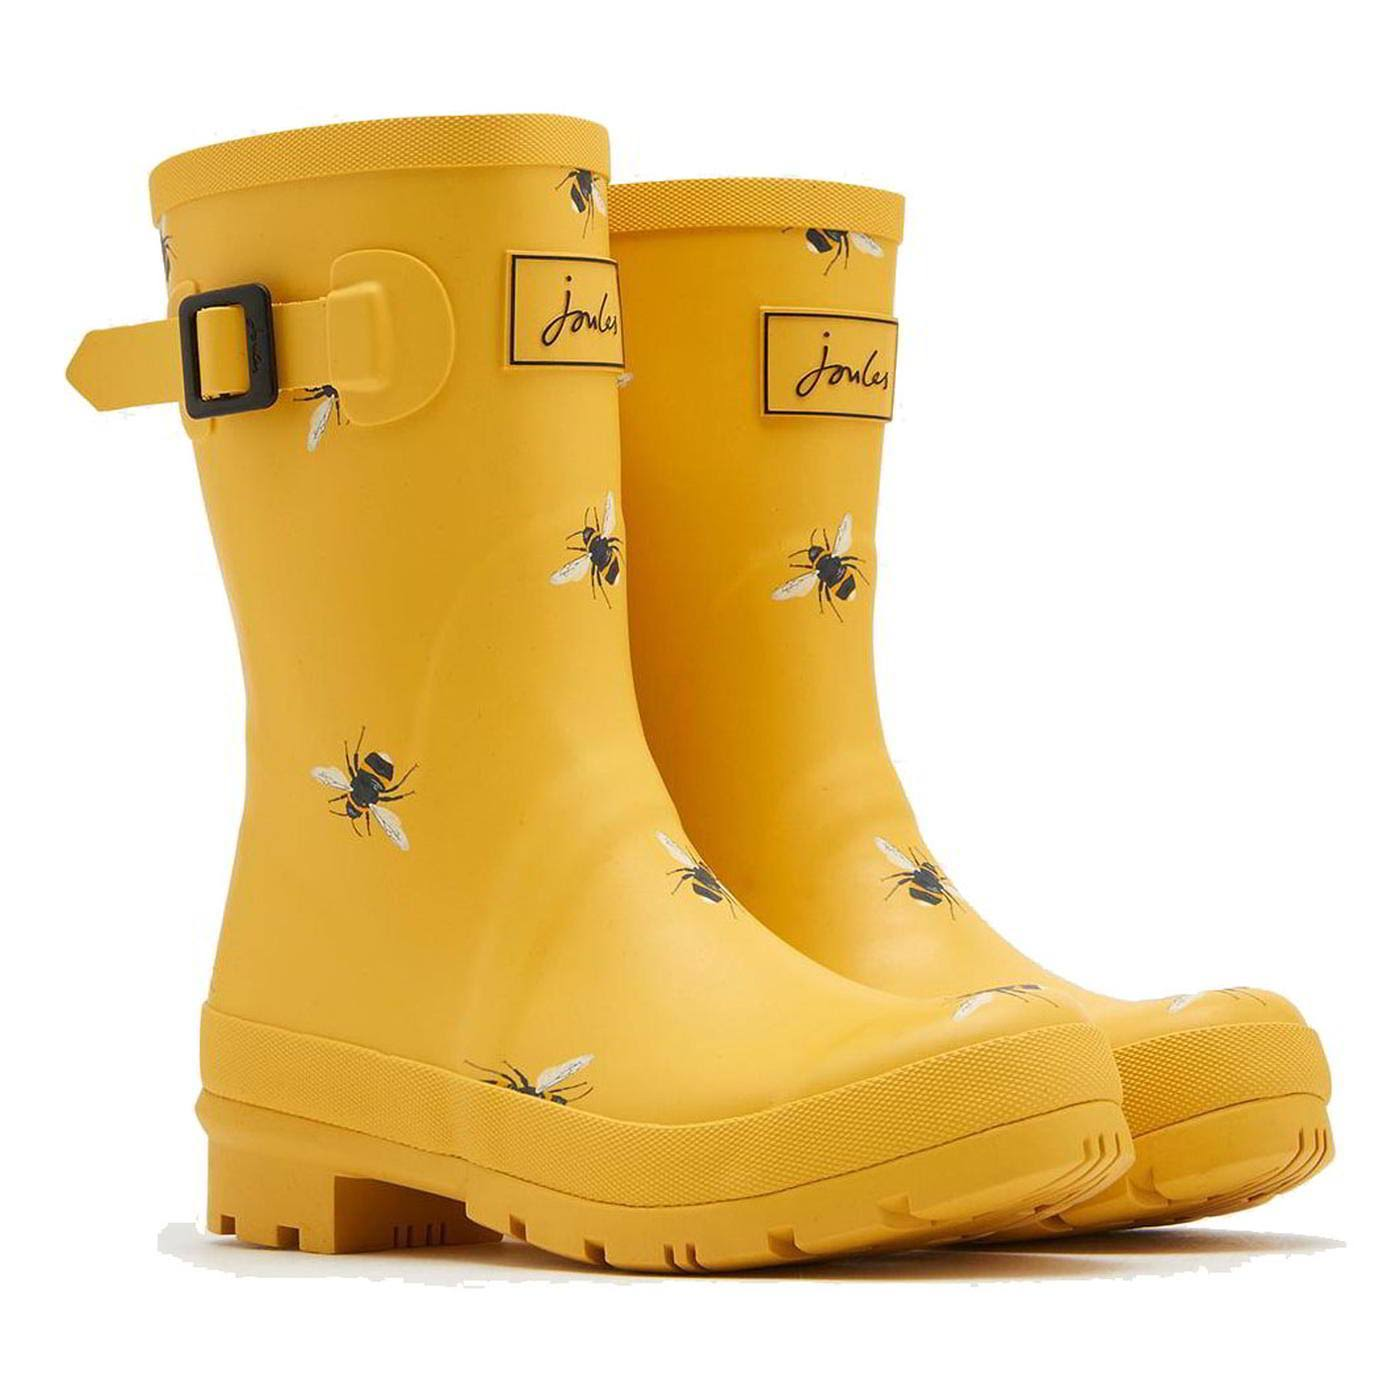 Joules Women's Molly Rain Boot - Yellow, 9 US